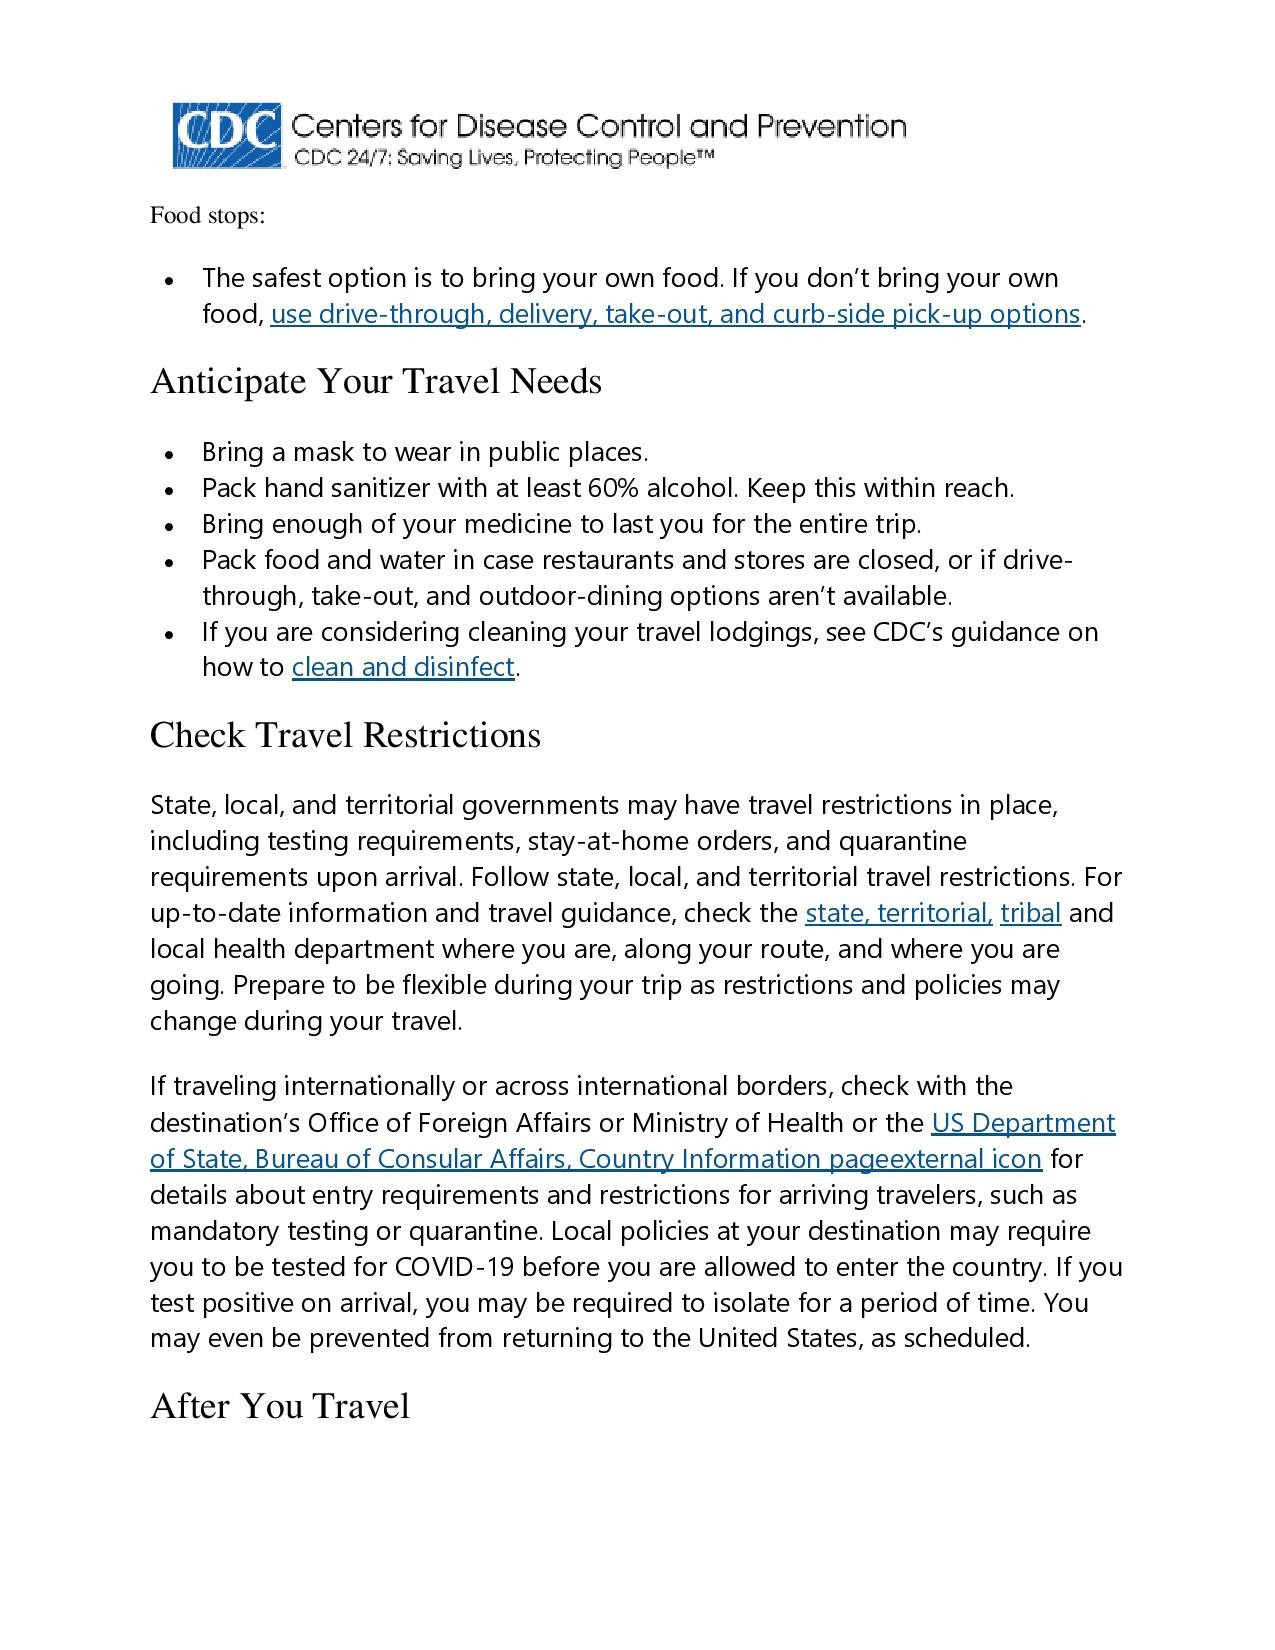 Travel during the COVID.docx-page-005